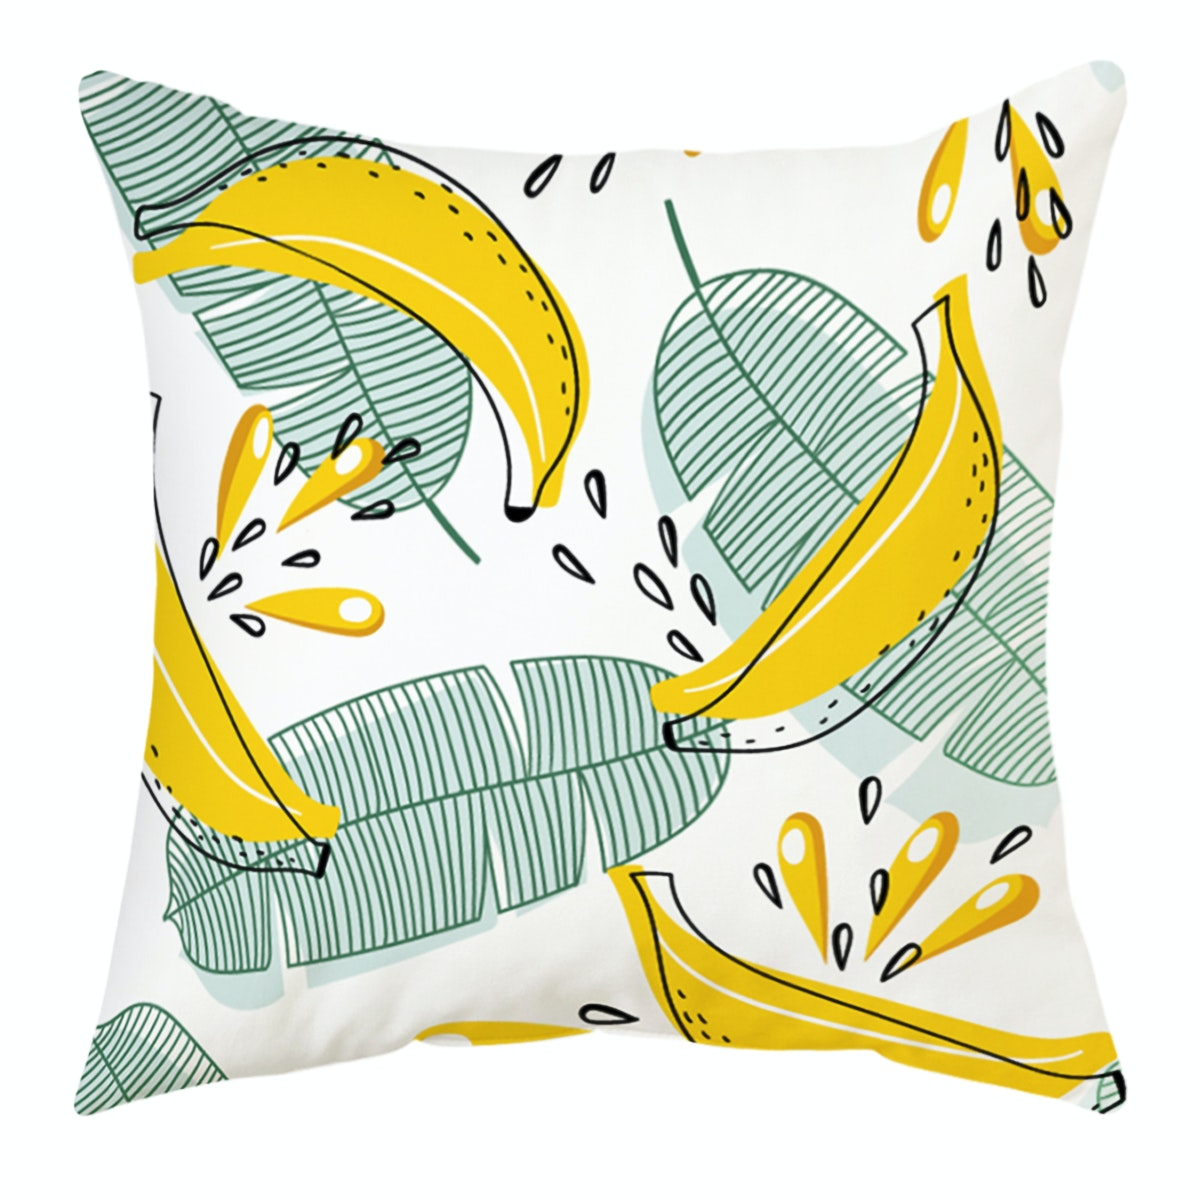 Decorio Sarung Bantal - Banana Leaf 40x40cm